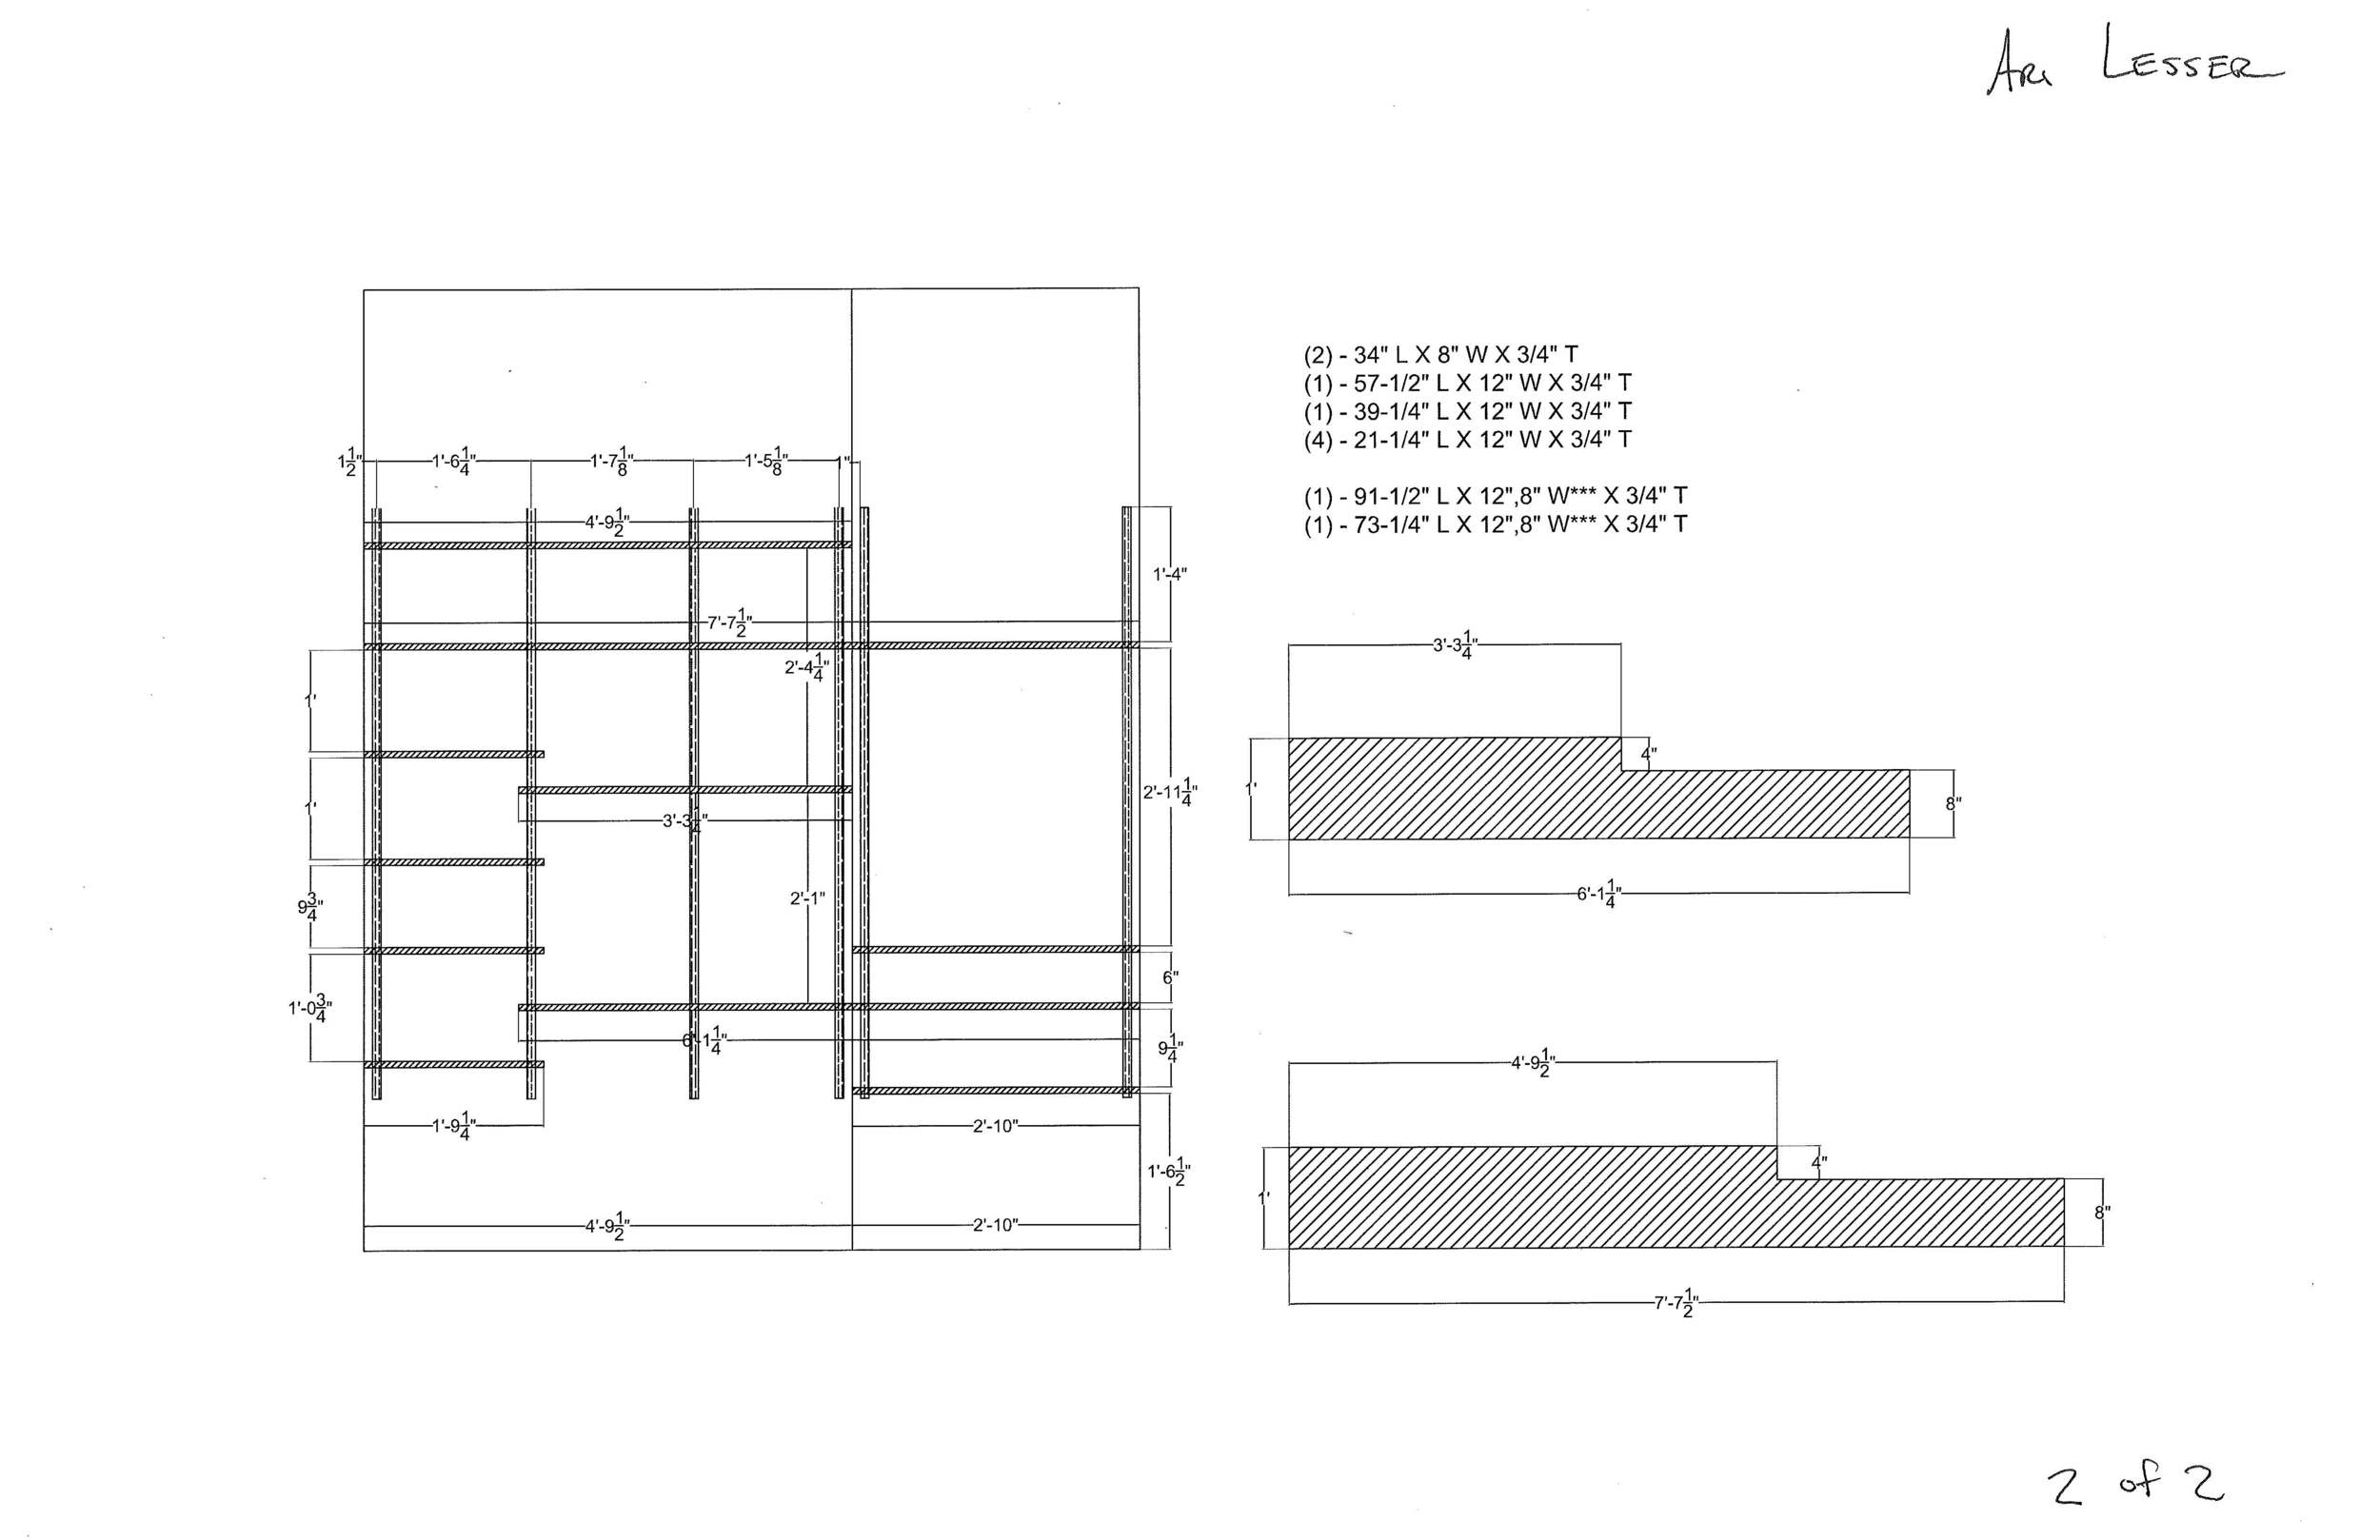 Shelf Final Layout And Dimensions